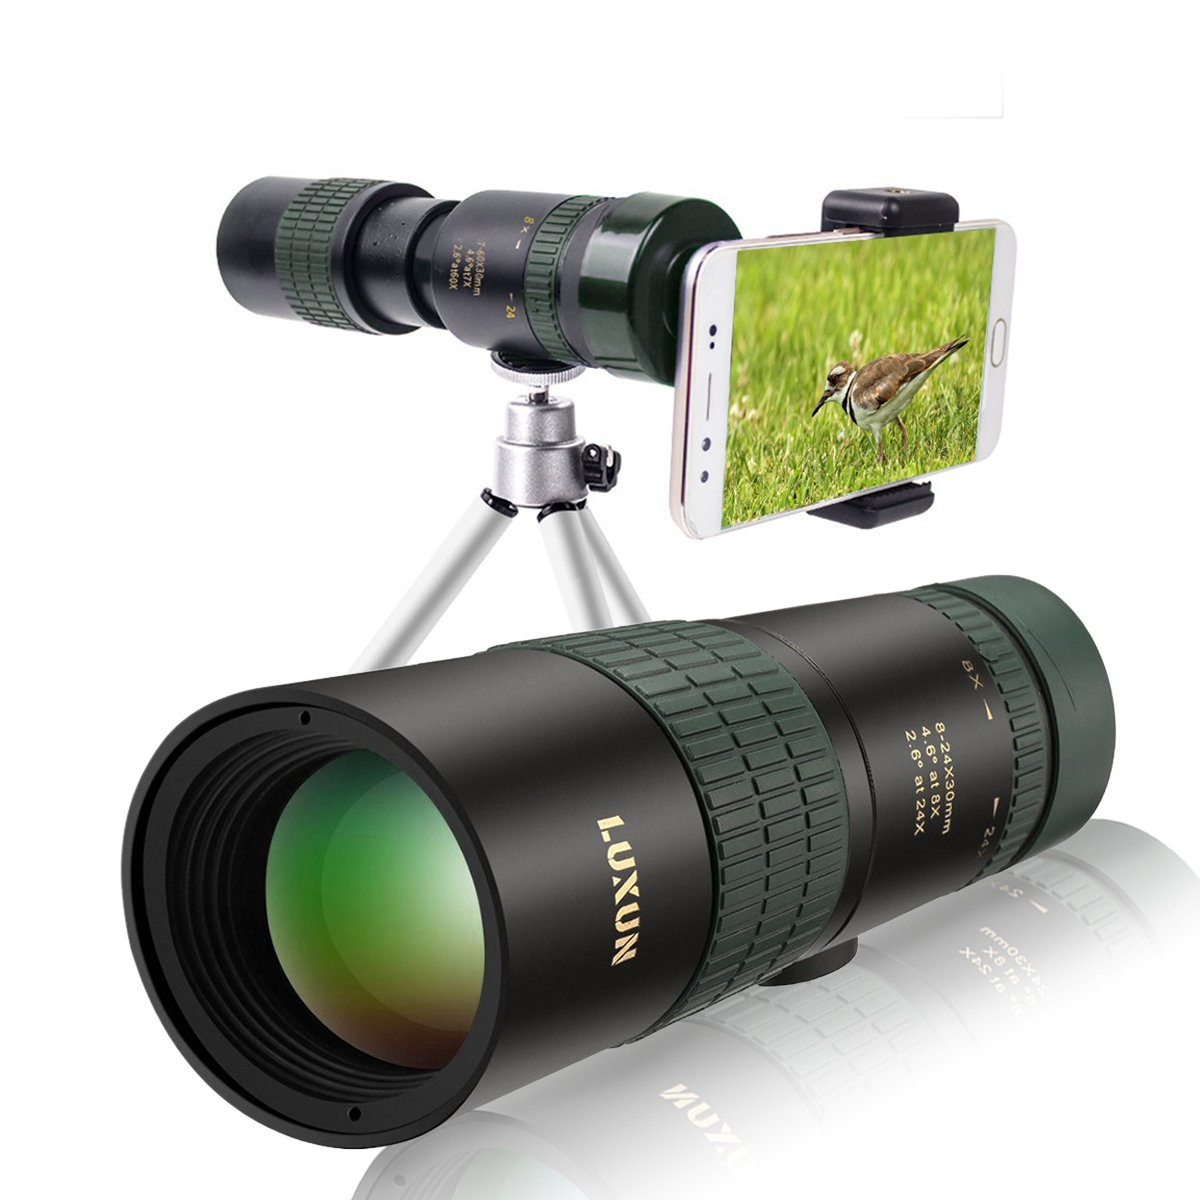 Yelomin Zoom Monoculars Telescope,24X30 Dual Focus optics Multi-coated Lens BAK4 Prism Spotting Scope with Tripod and Cellphone Adapter Suitable for Bird Watching,Sport Games and Concerts (8X) by Yelomin